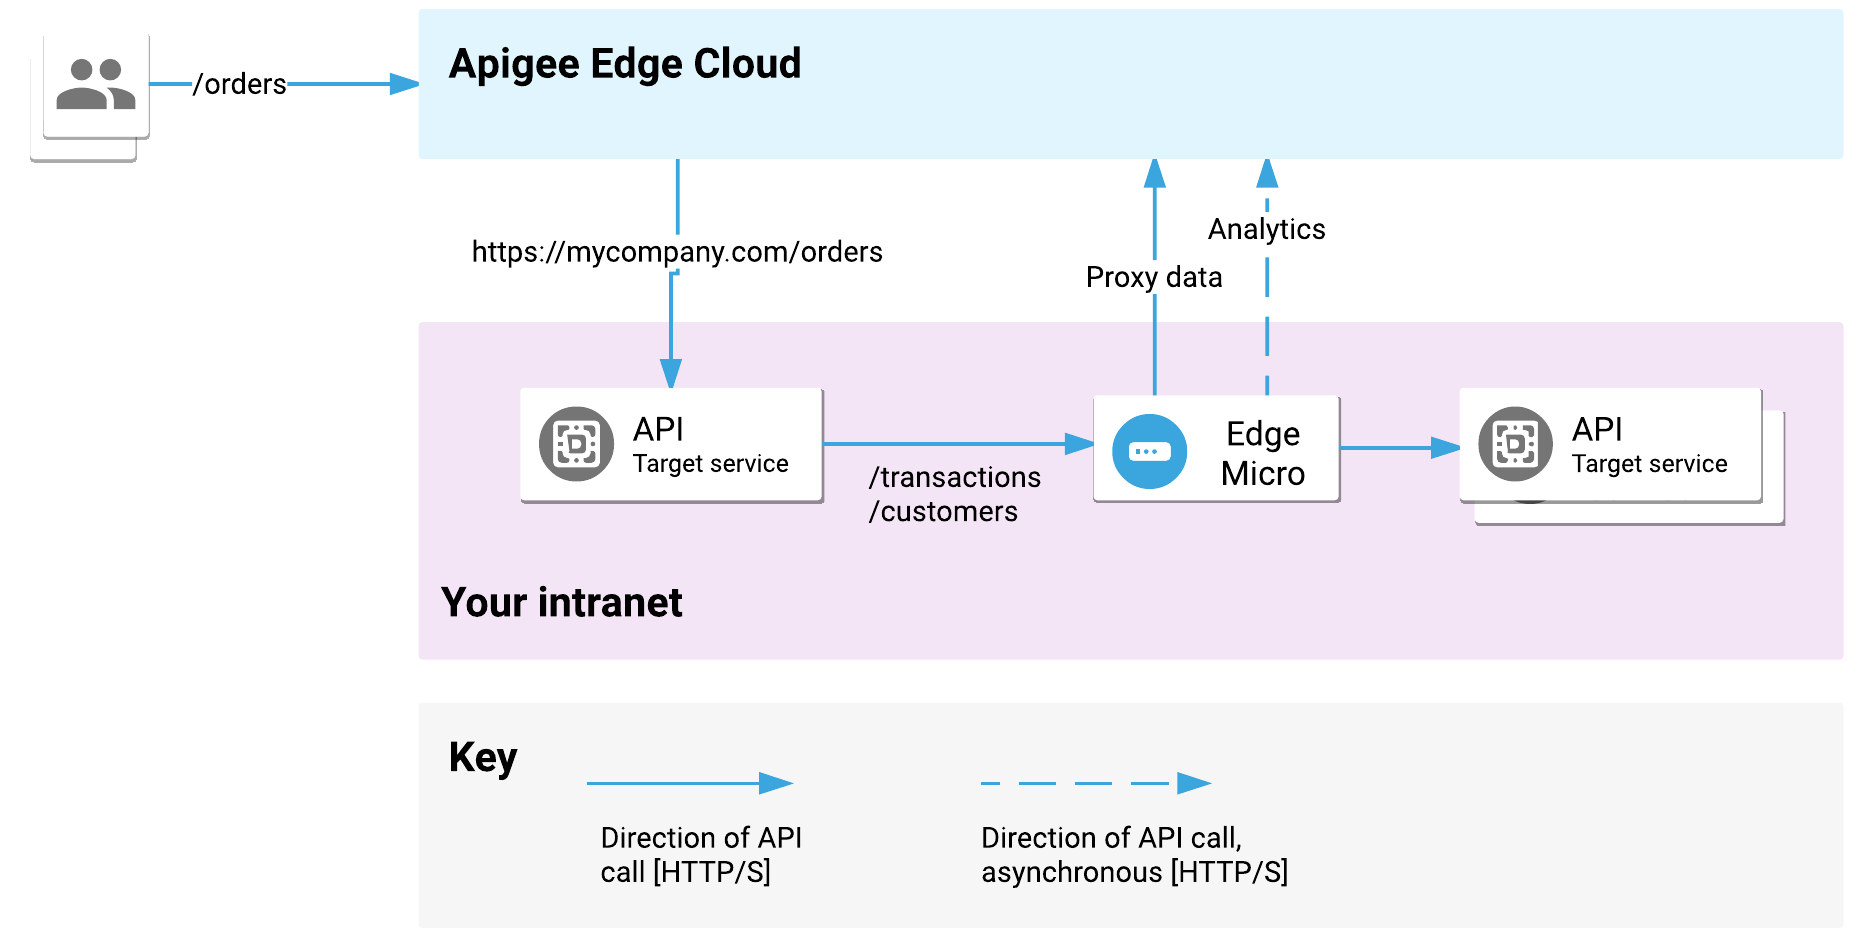 API proxies made to Edge Cloud are sent to target services on your intranet,               and the target services send requests to Edge Microgateway on your intranet.               The microgateway then sends requests to other target API services on your               intranet.